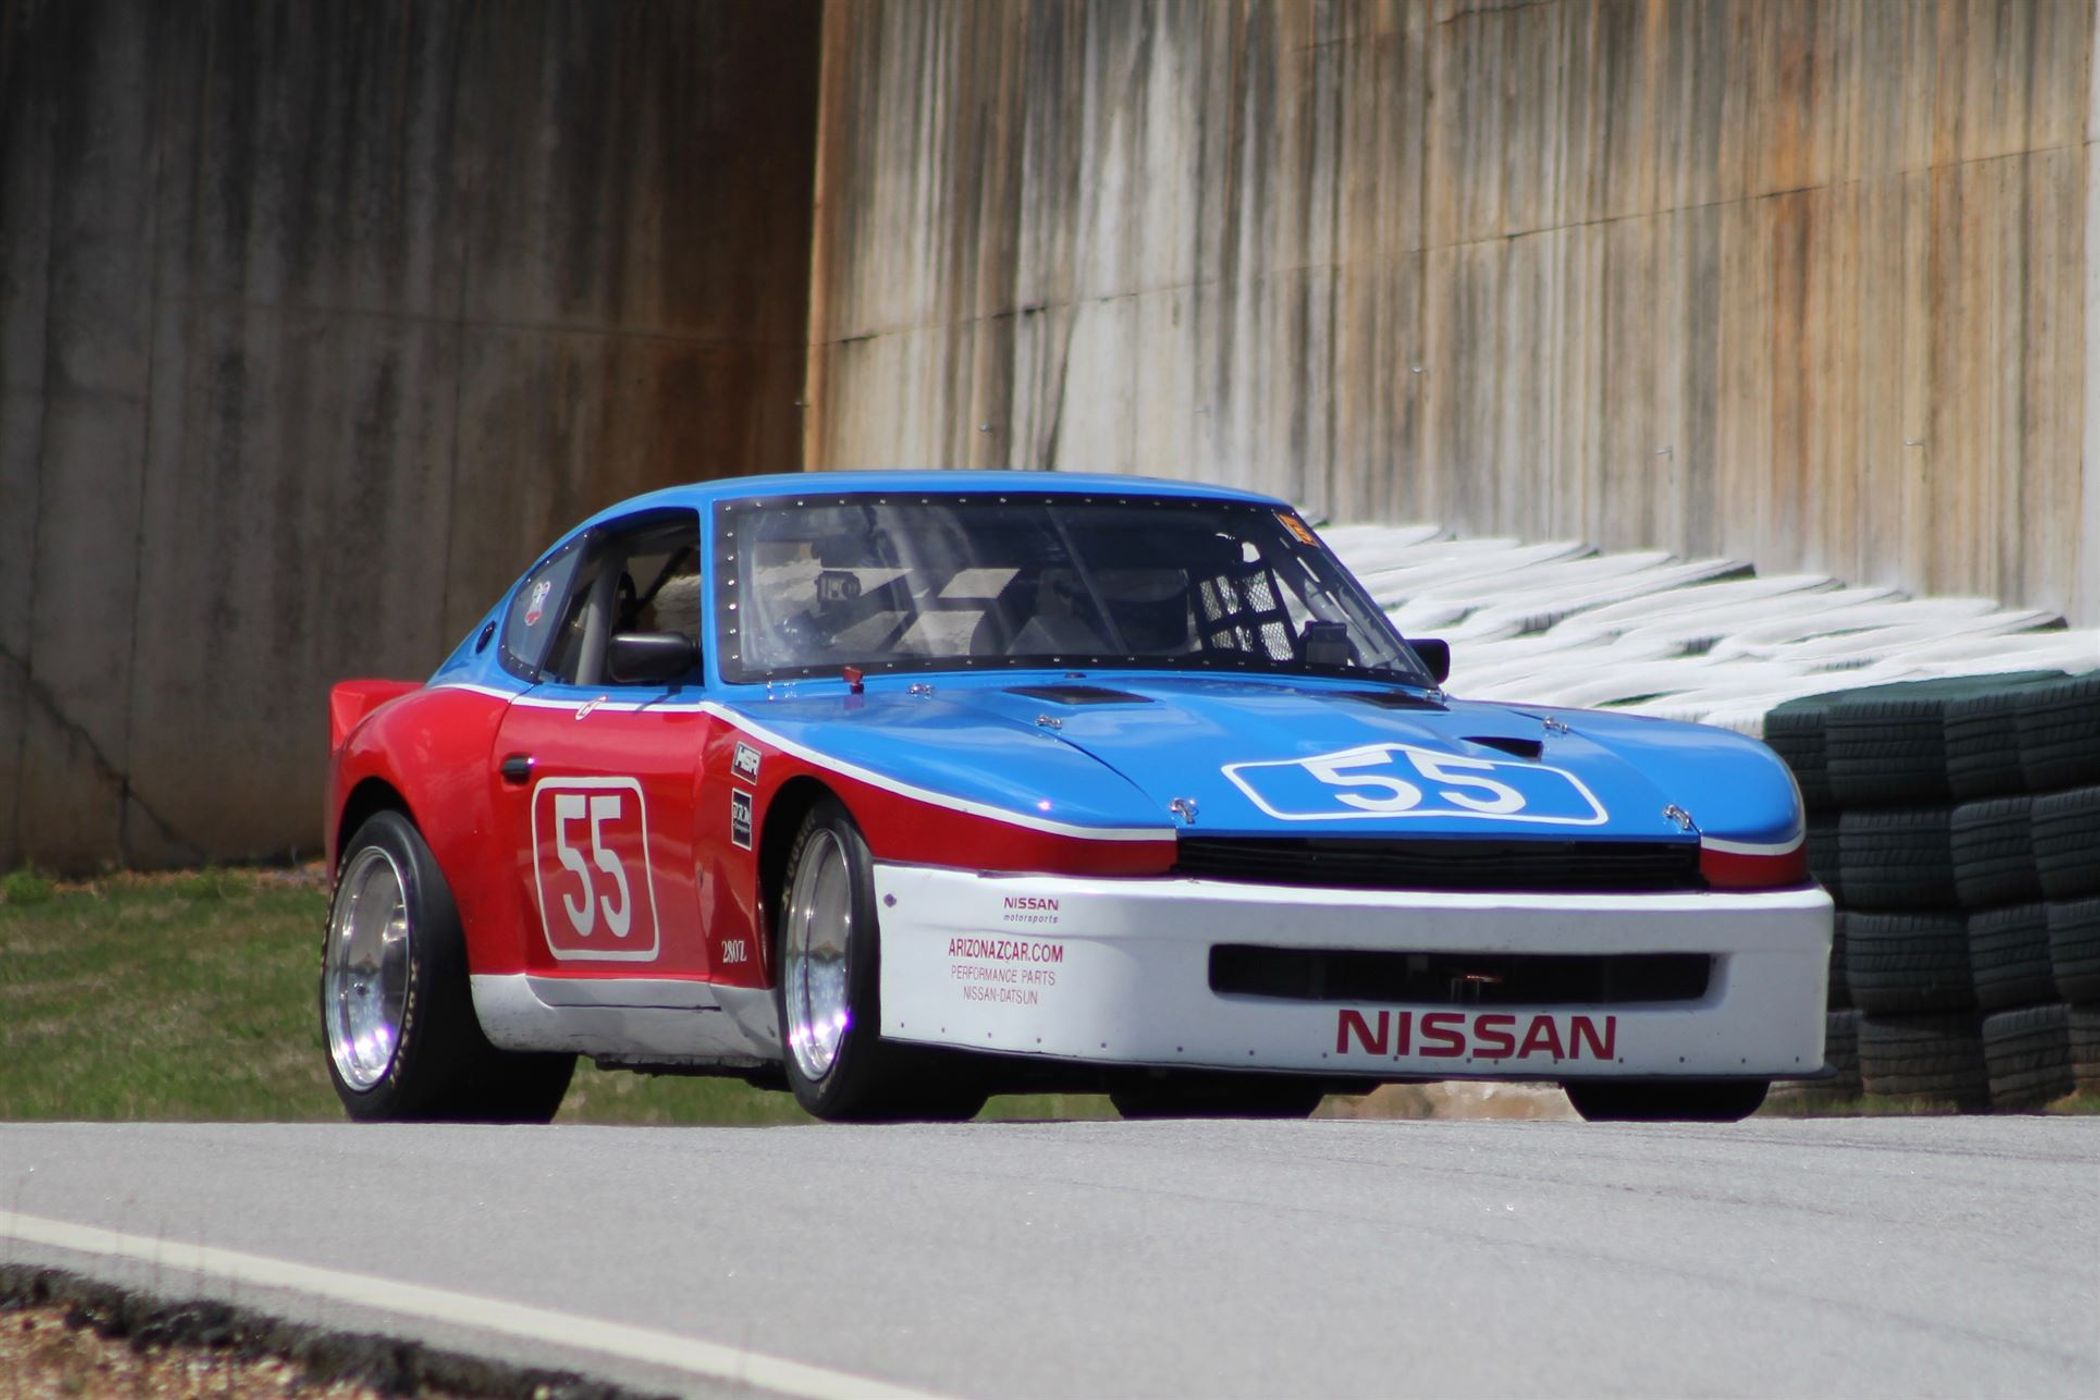 Gallery and Notes From a Nissan Weekend at The Classic